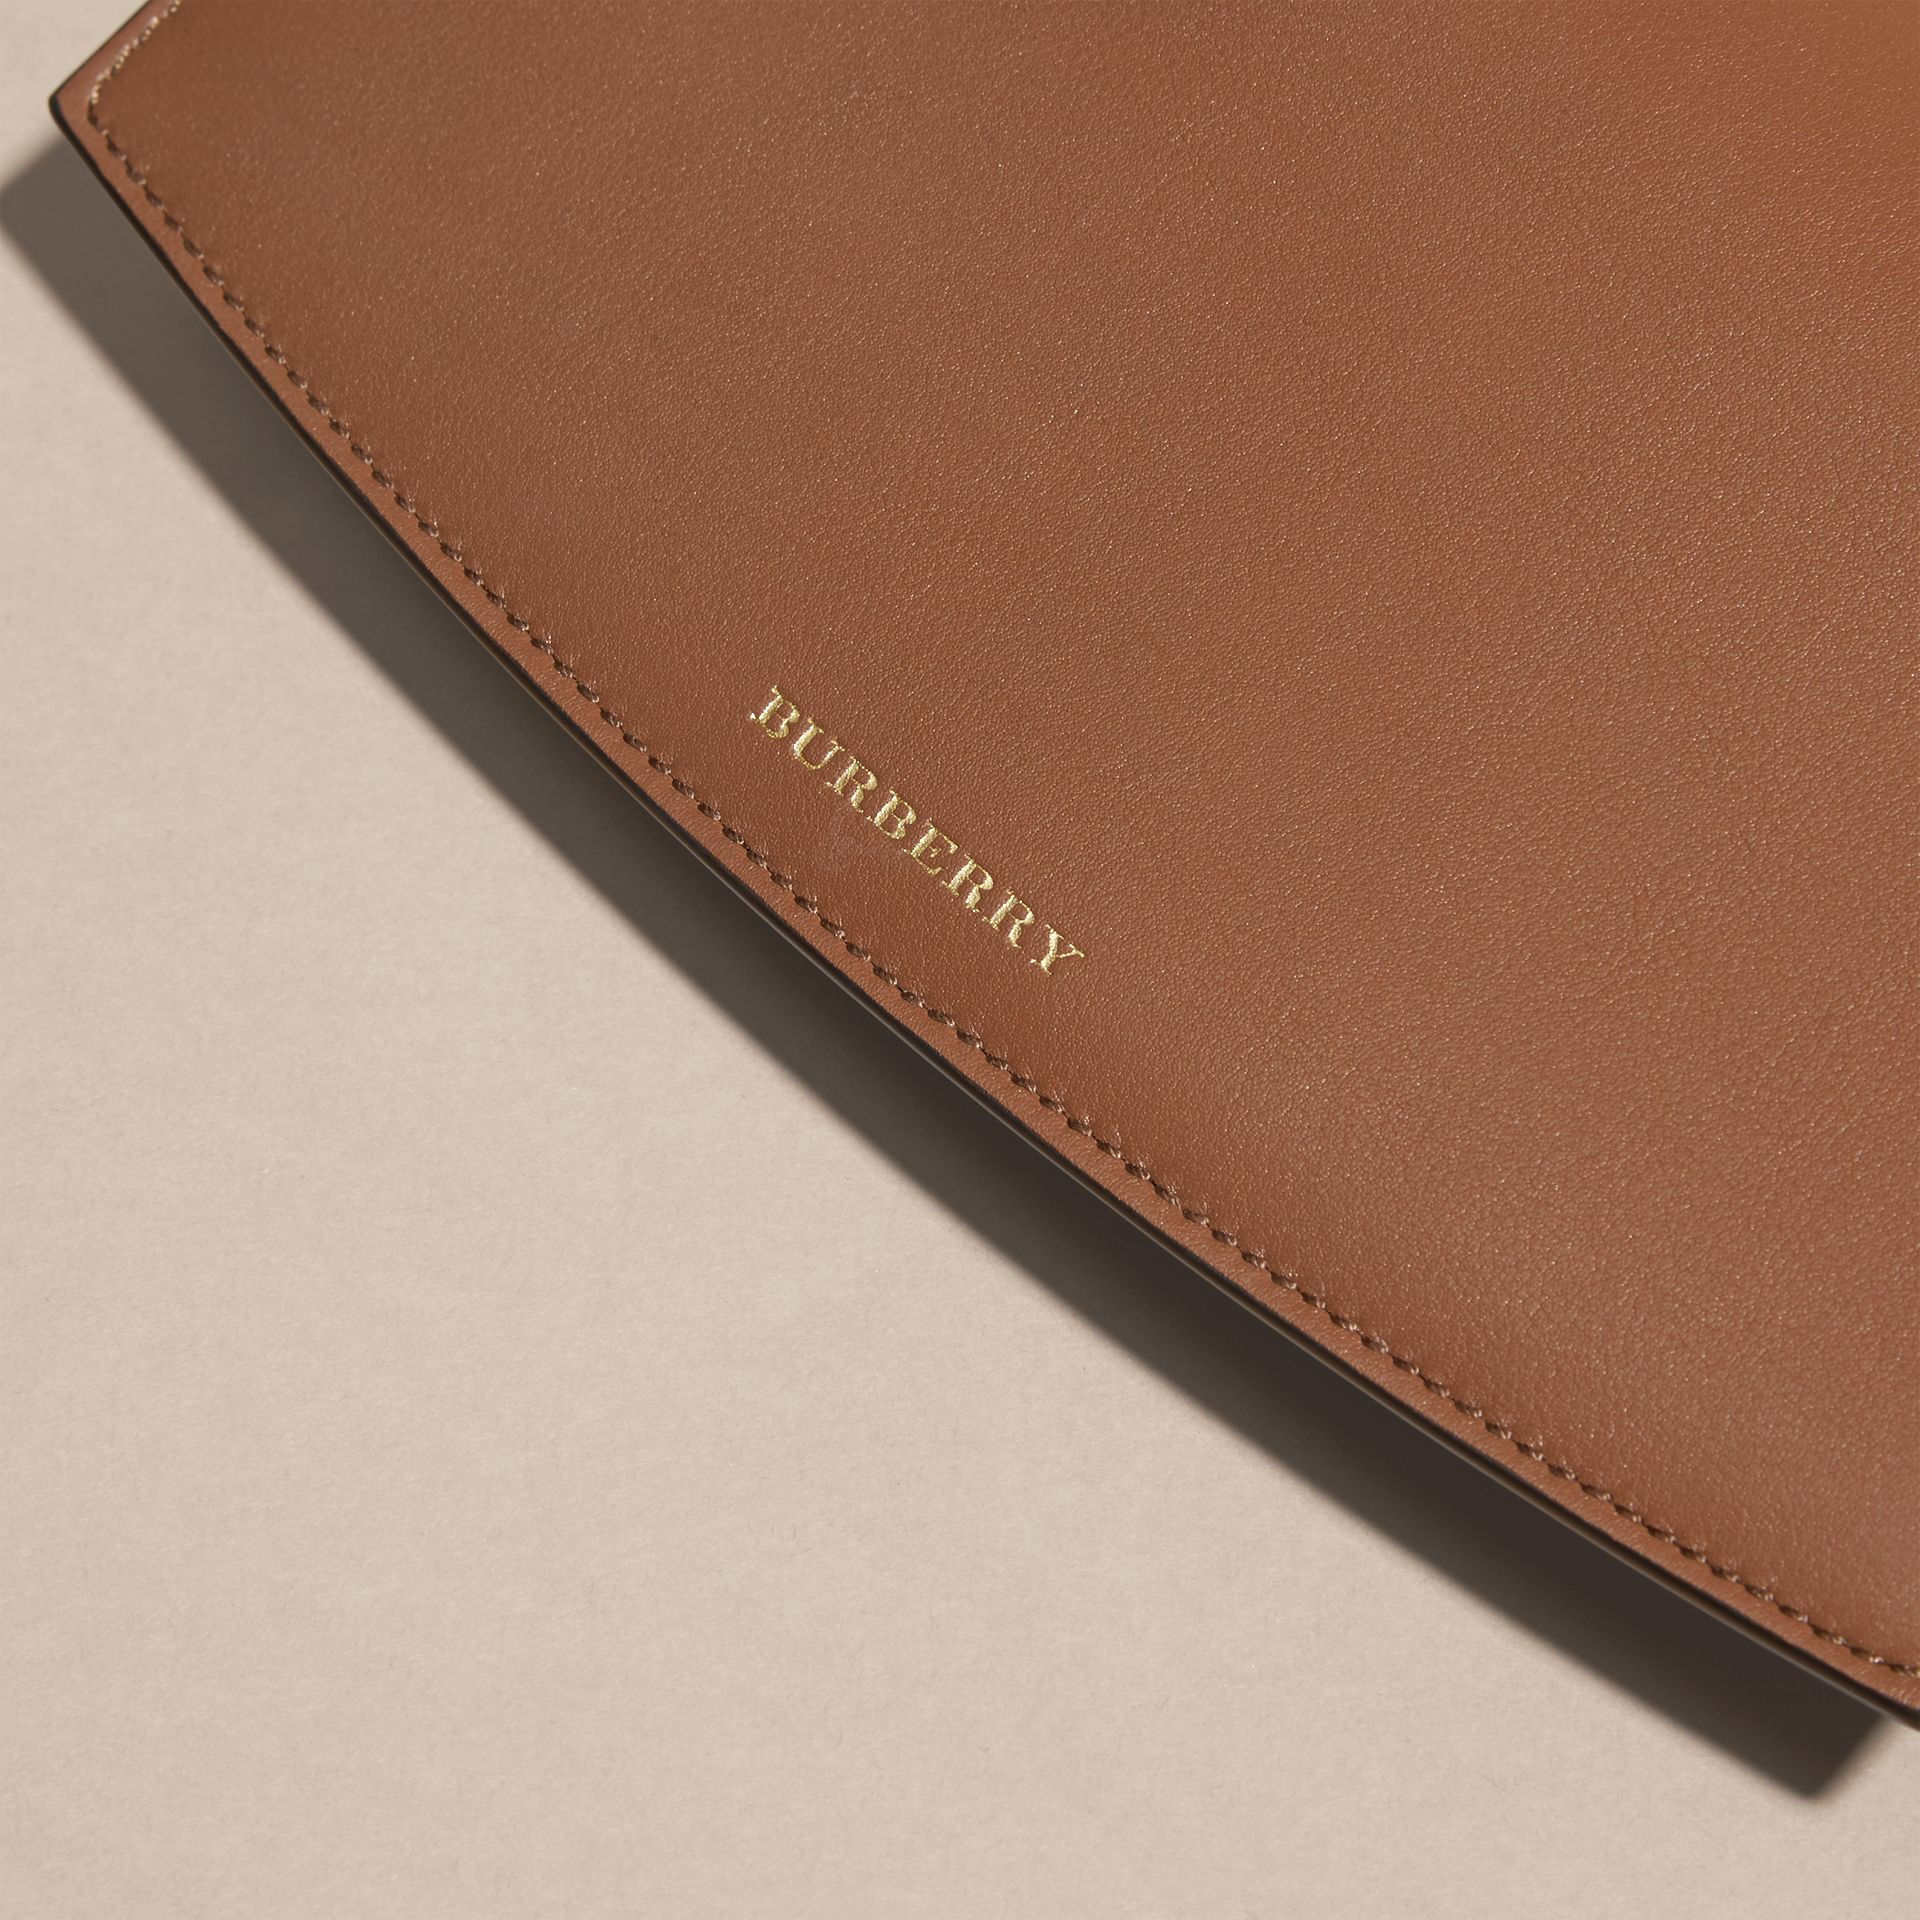 Horseferry Check and Leather Wallet with Chain in Tan - Women | Burberry - gallery image 2